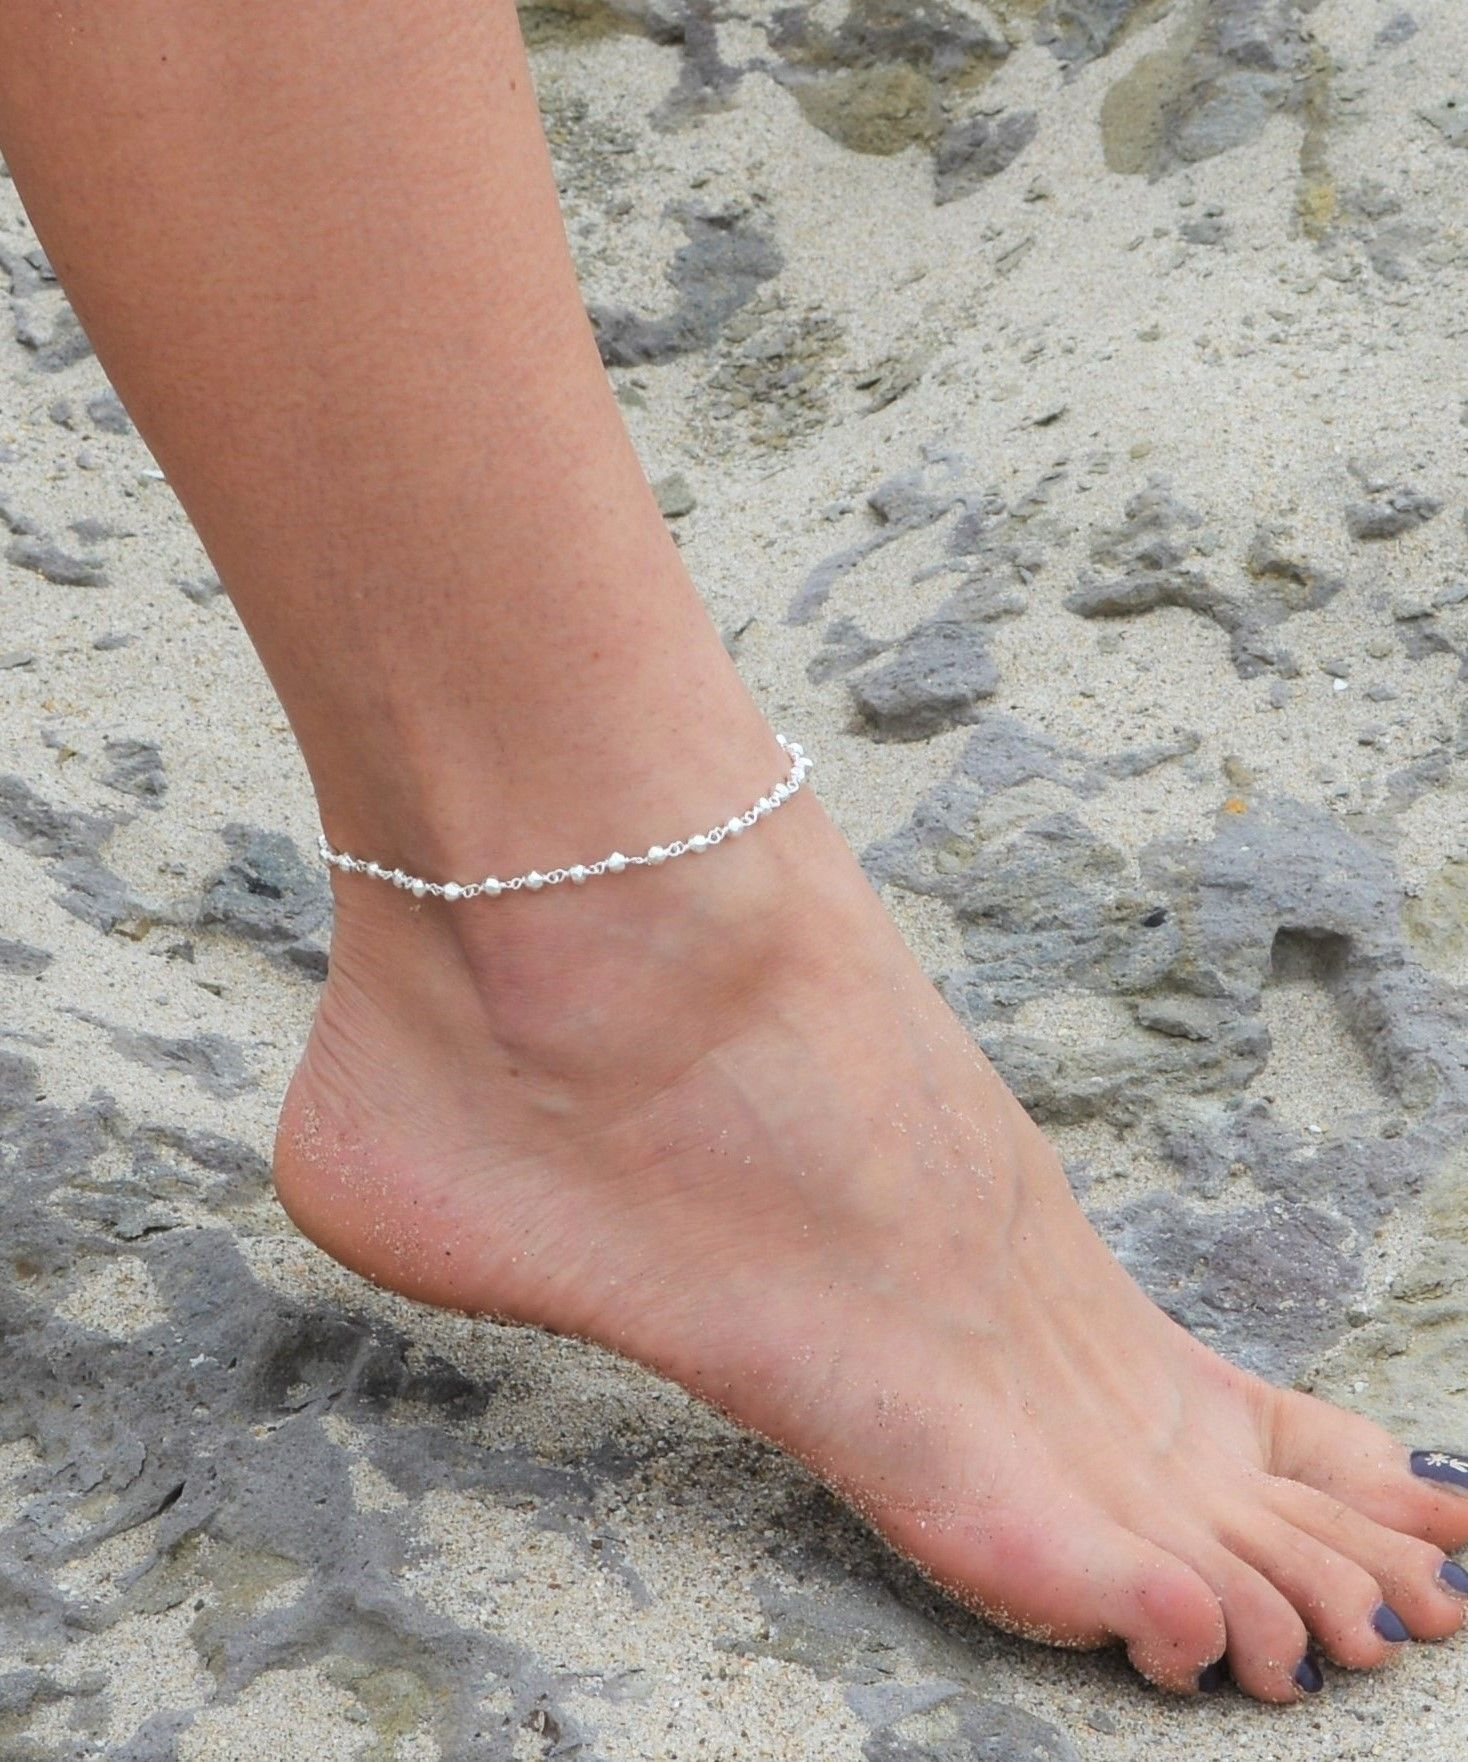 starfish ankle custom products fabulous silver bracelet sterling bracelets creations anklet